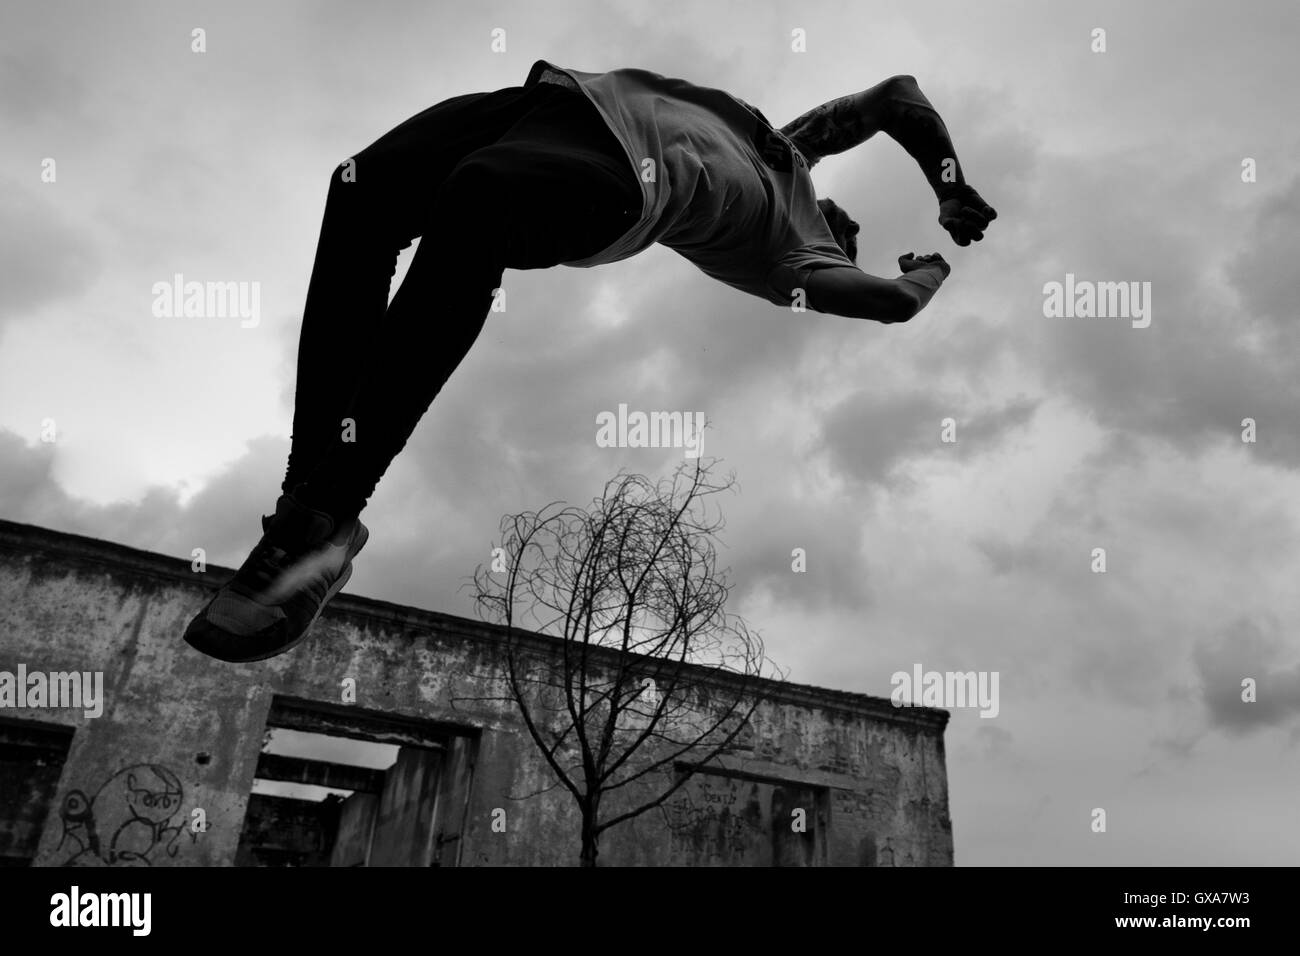 Jose Rodriguez, a parkour athlete from Plus Parkour team, does a back flip in Bogotá, Colombia. - Stock Image